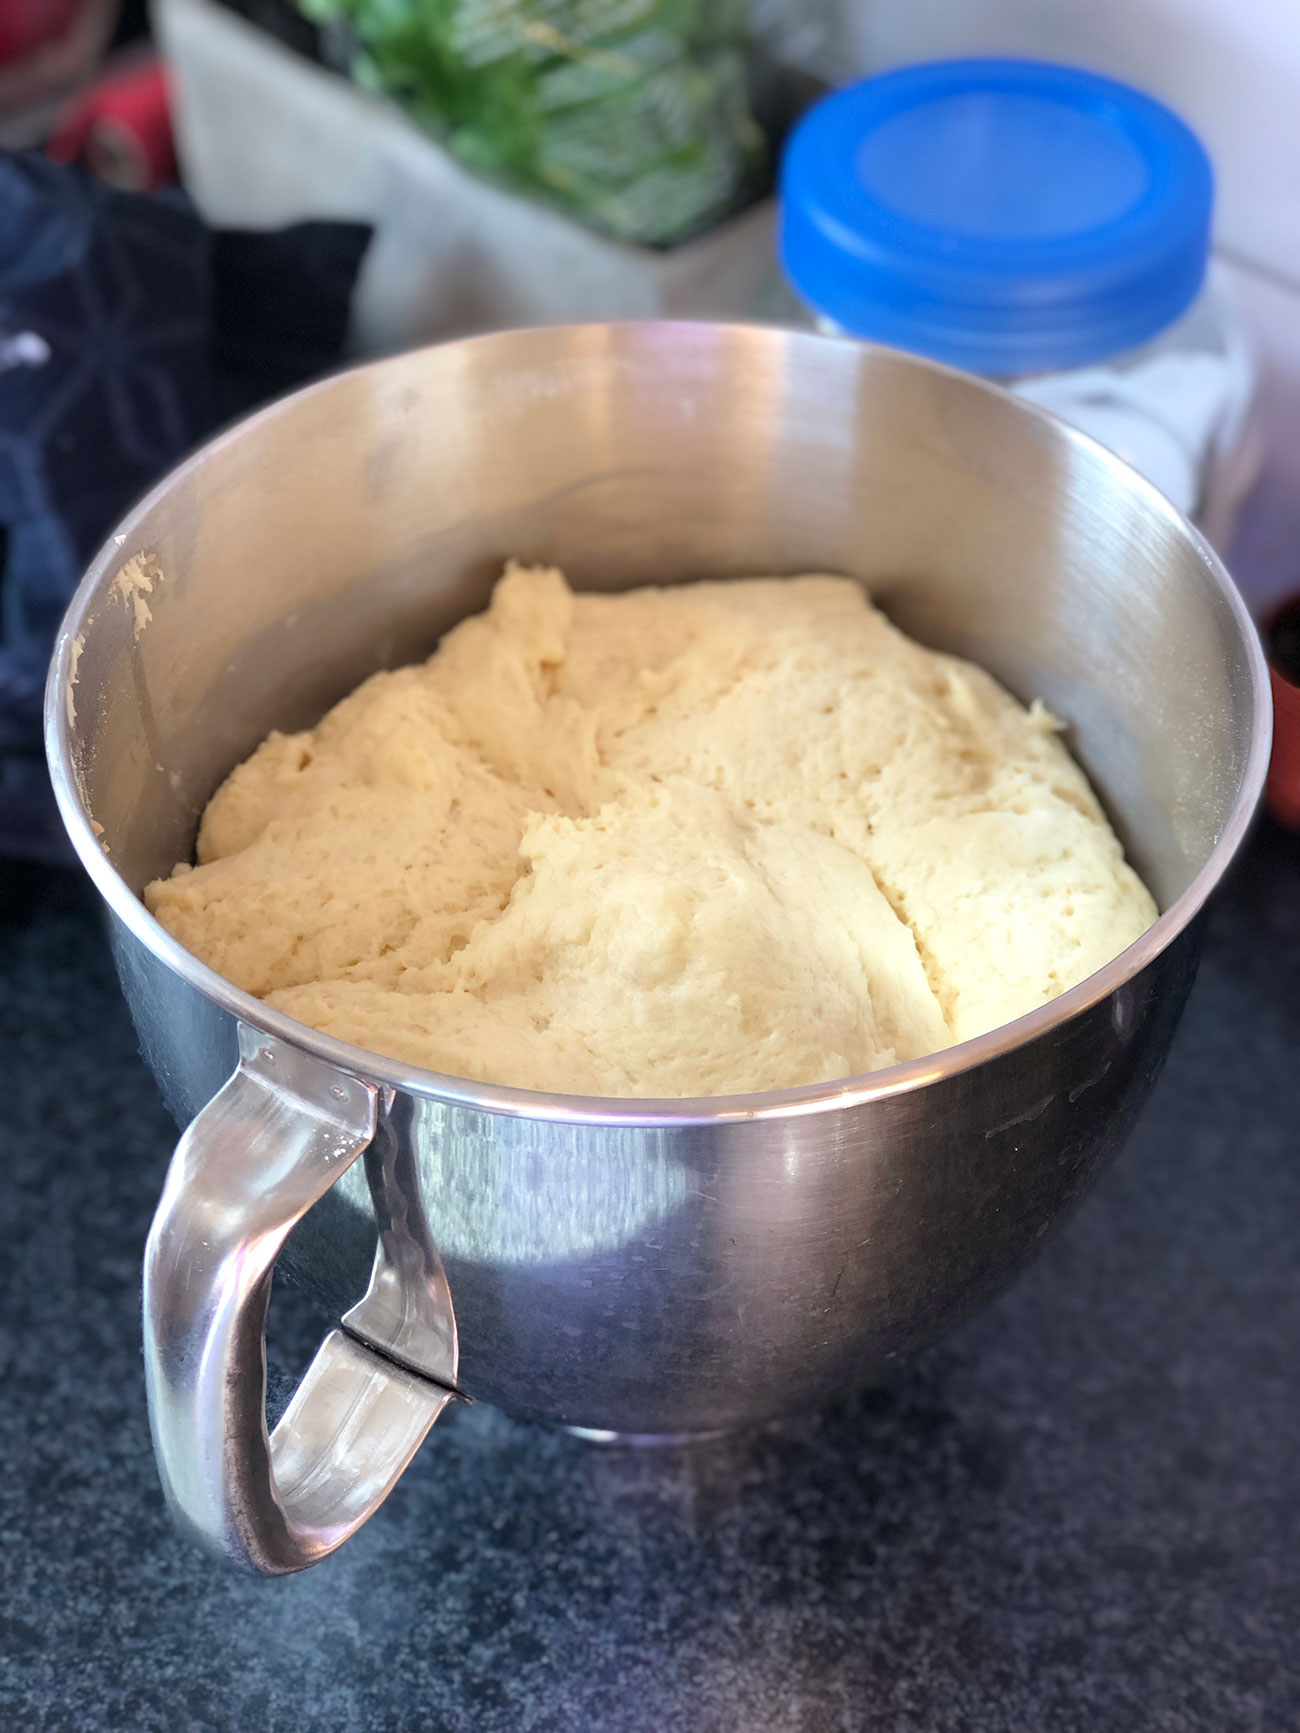 Vegan semla - making dough